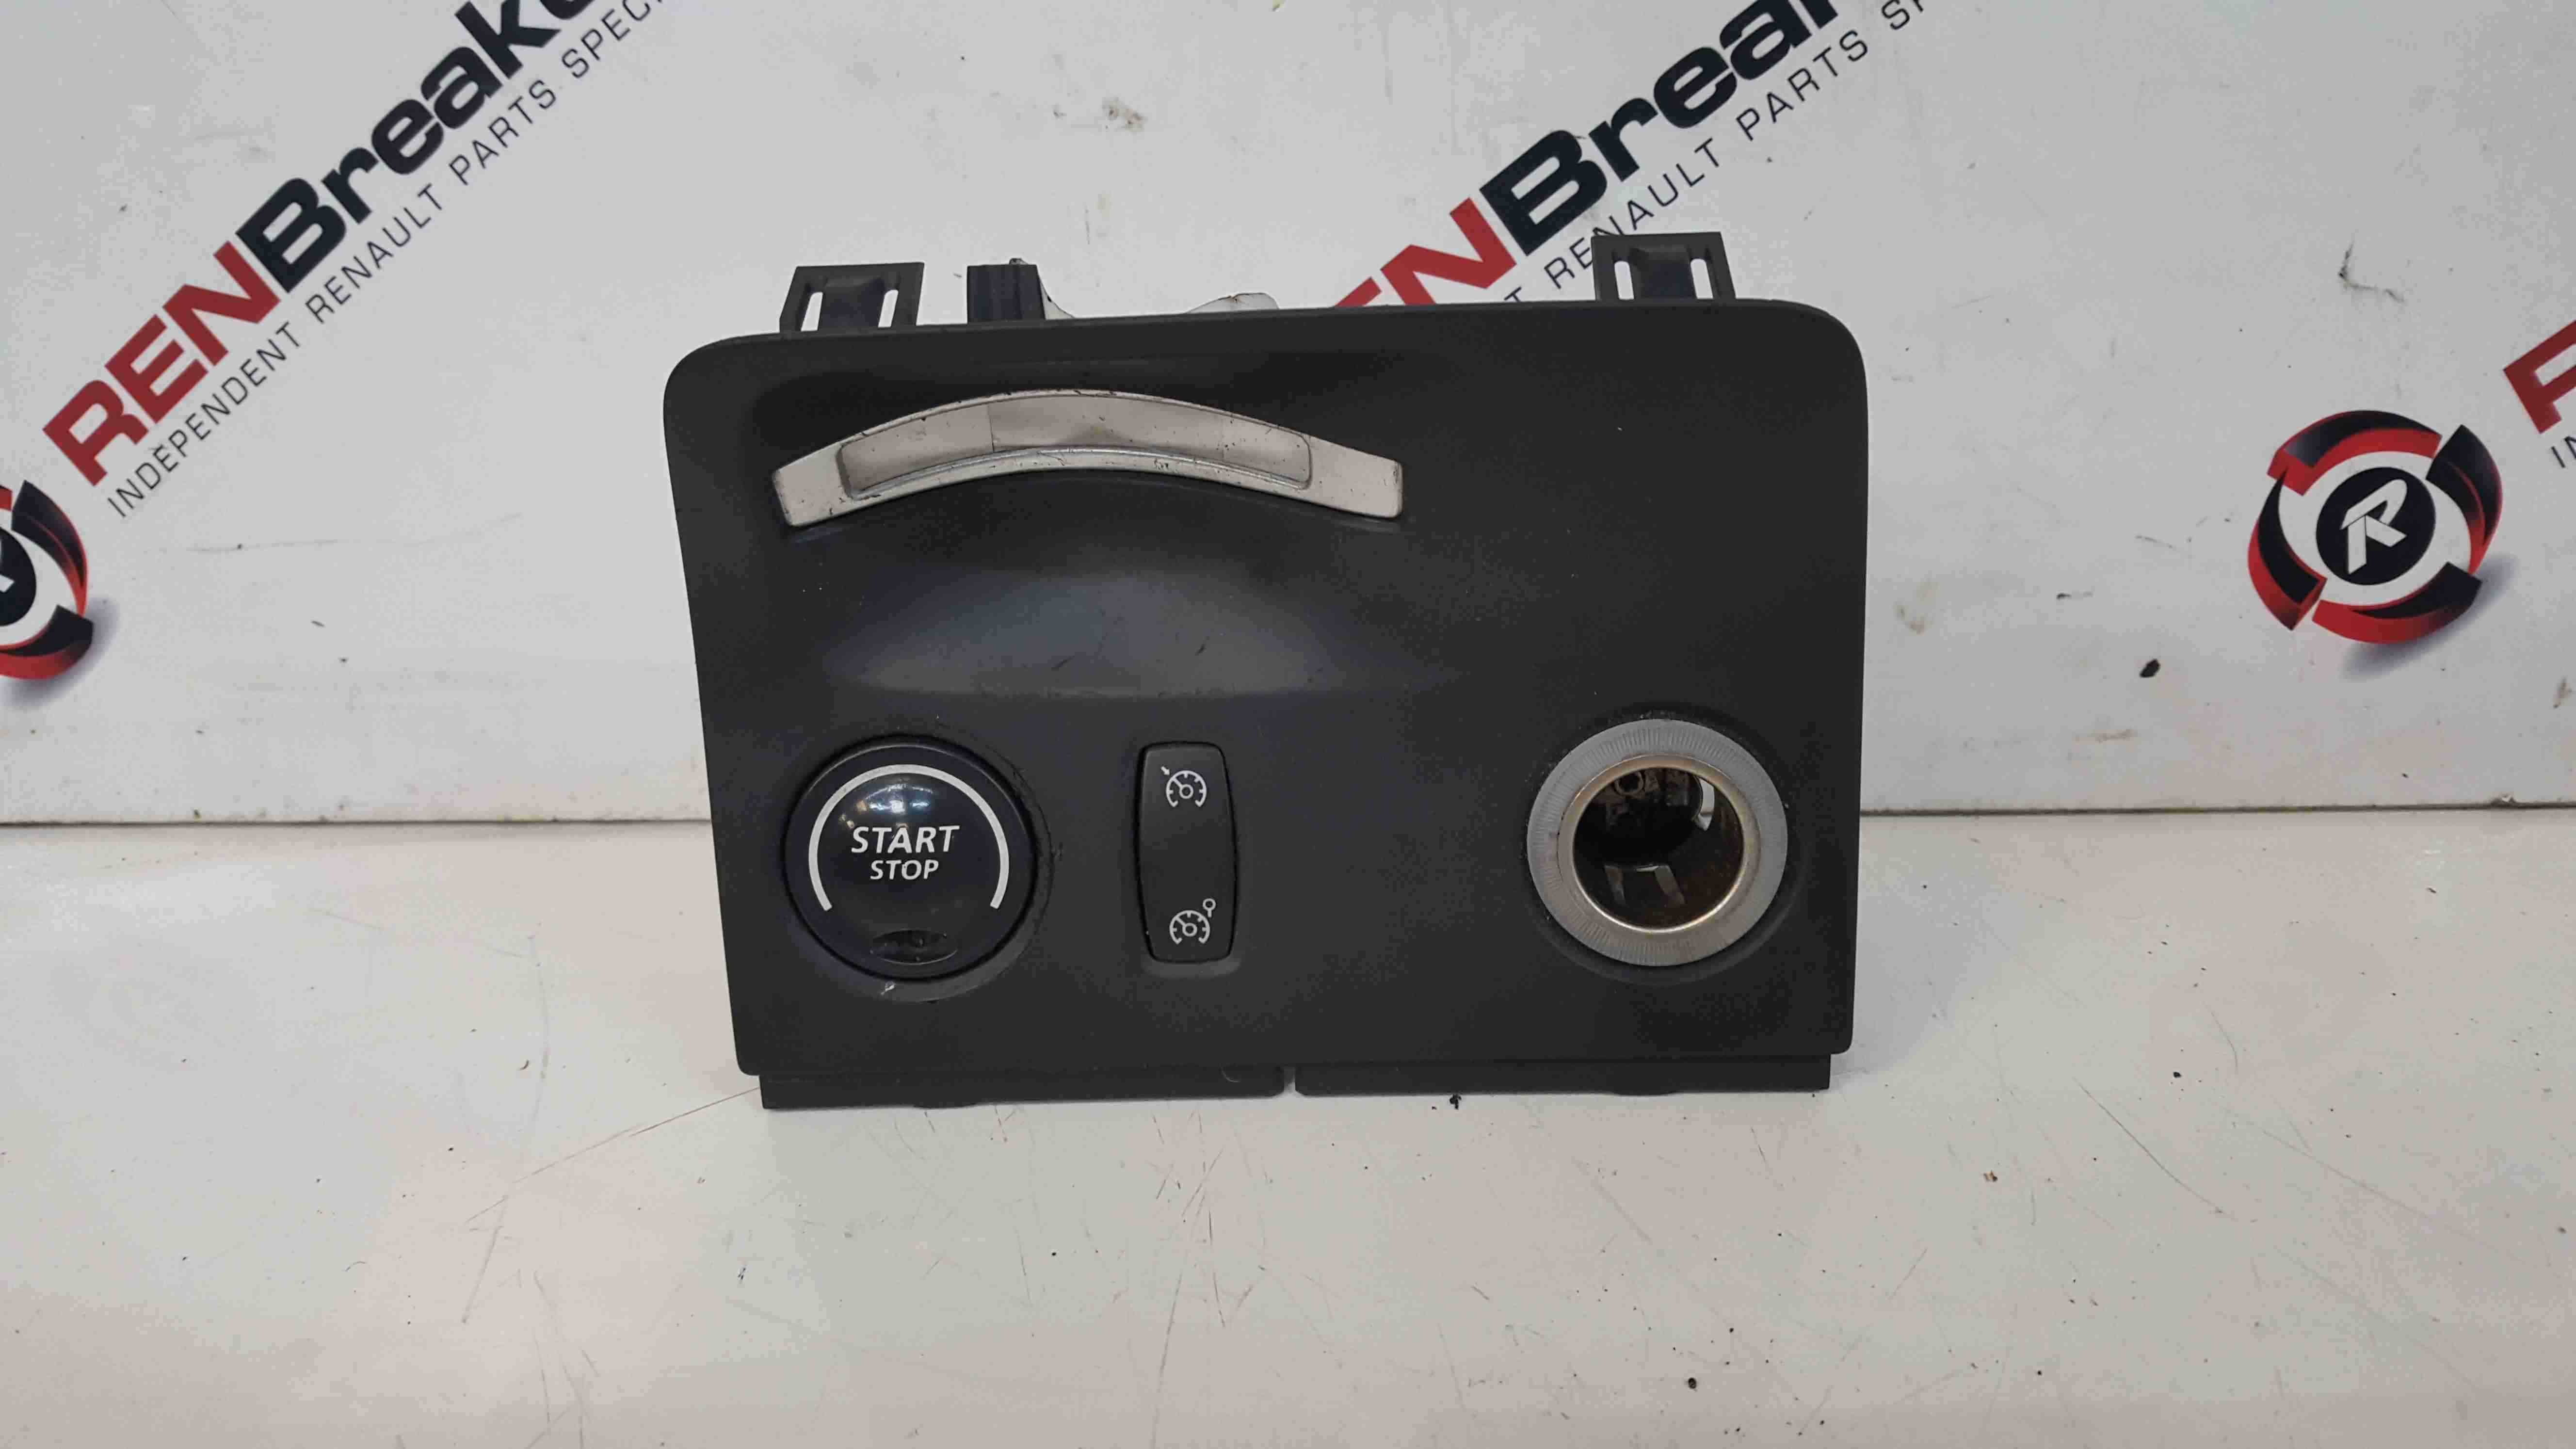 Renault Espace 2003-2013 Start Stop Button Cruise 8200396025